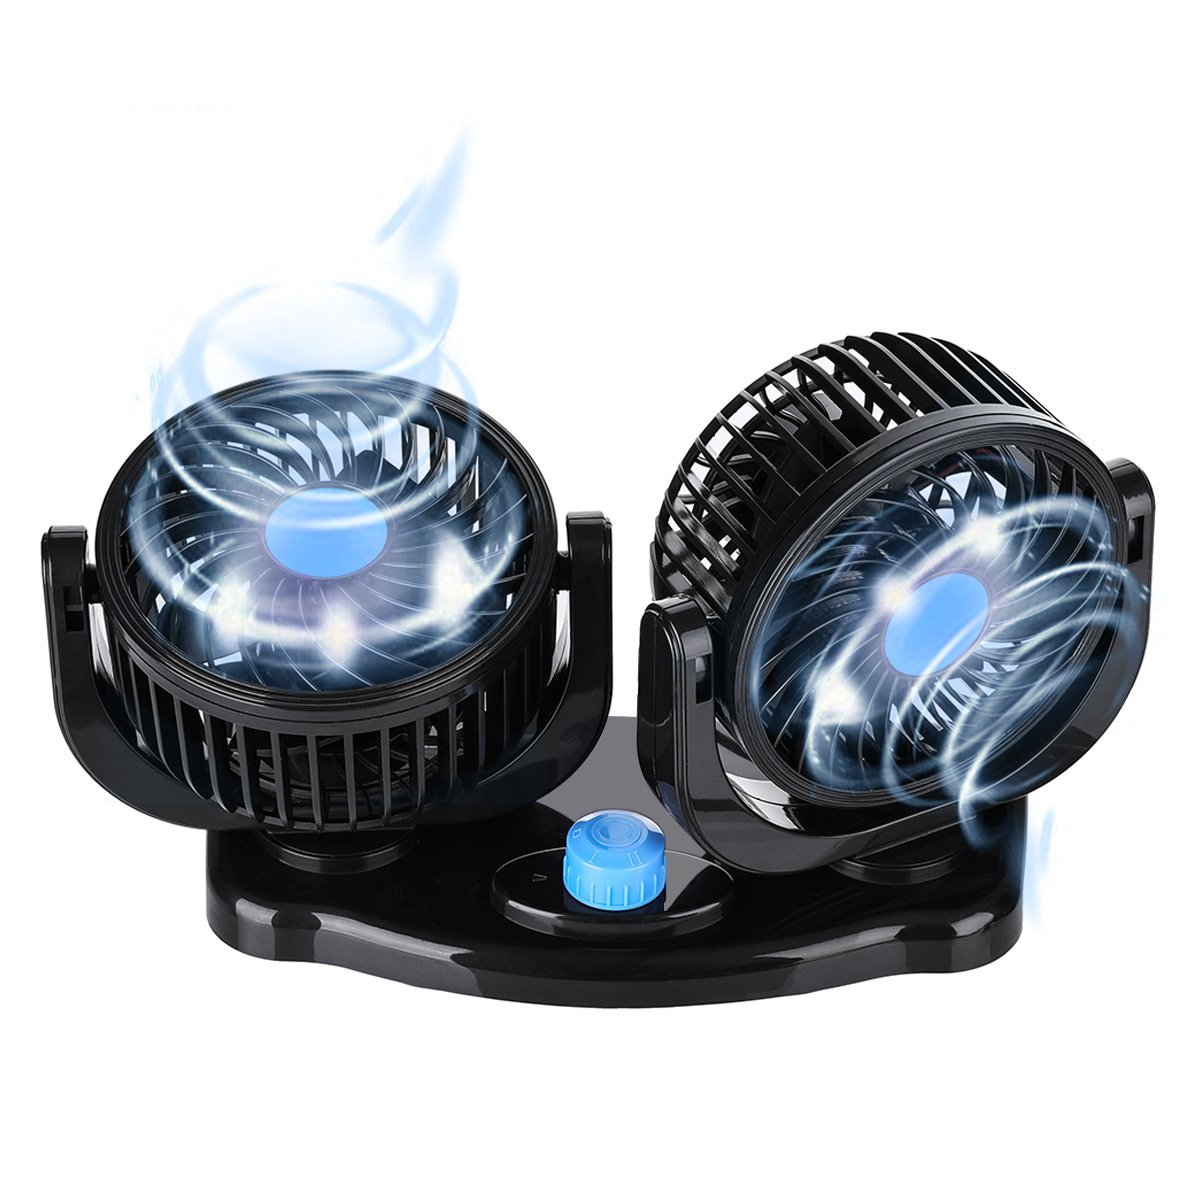 Dual Head 2 Speed 12V Cooling Air Circulator 360 Degree Rotatable Auto Fan Electric Car Fan for Home Sedan SUV//RV//Boat//Auto Vehicles